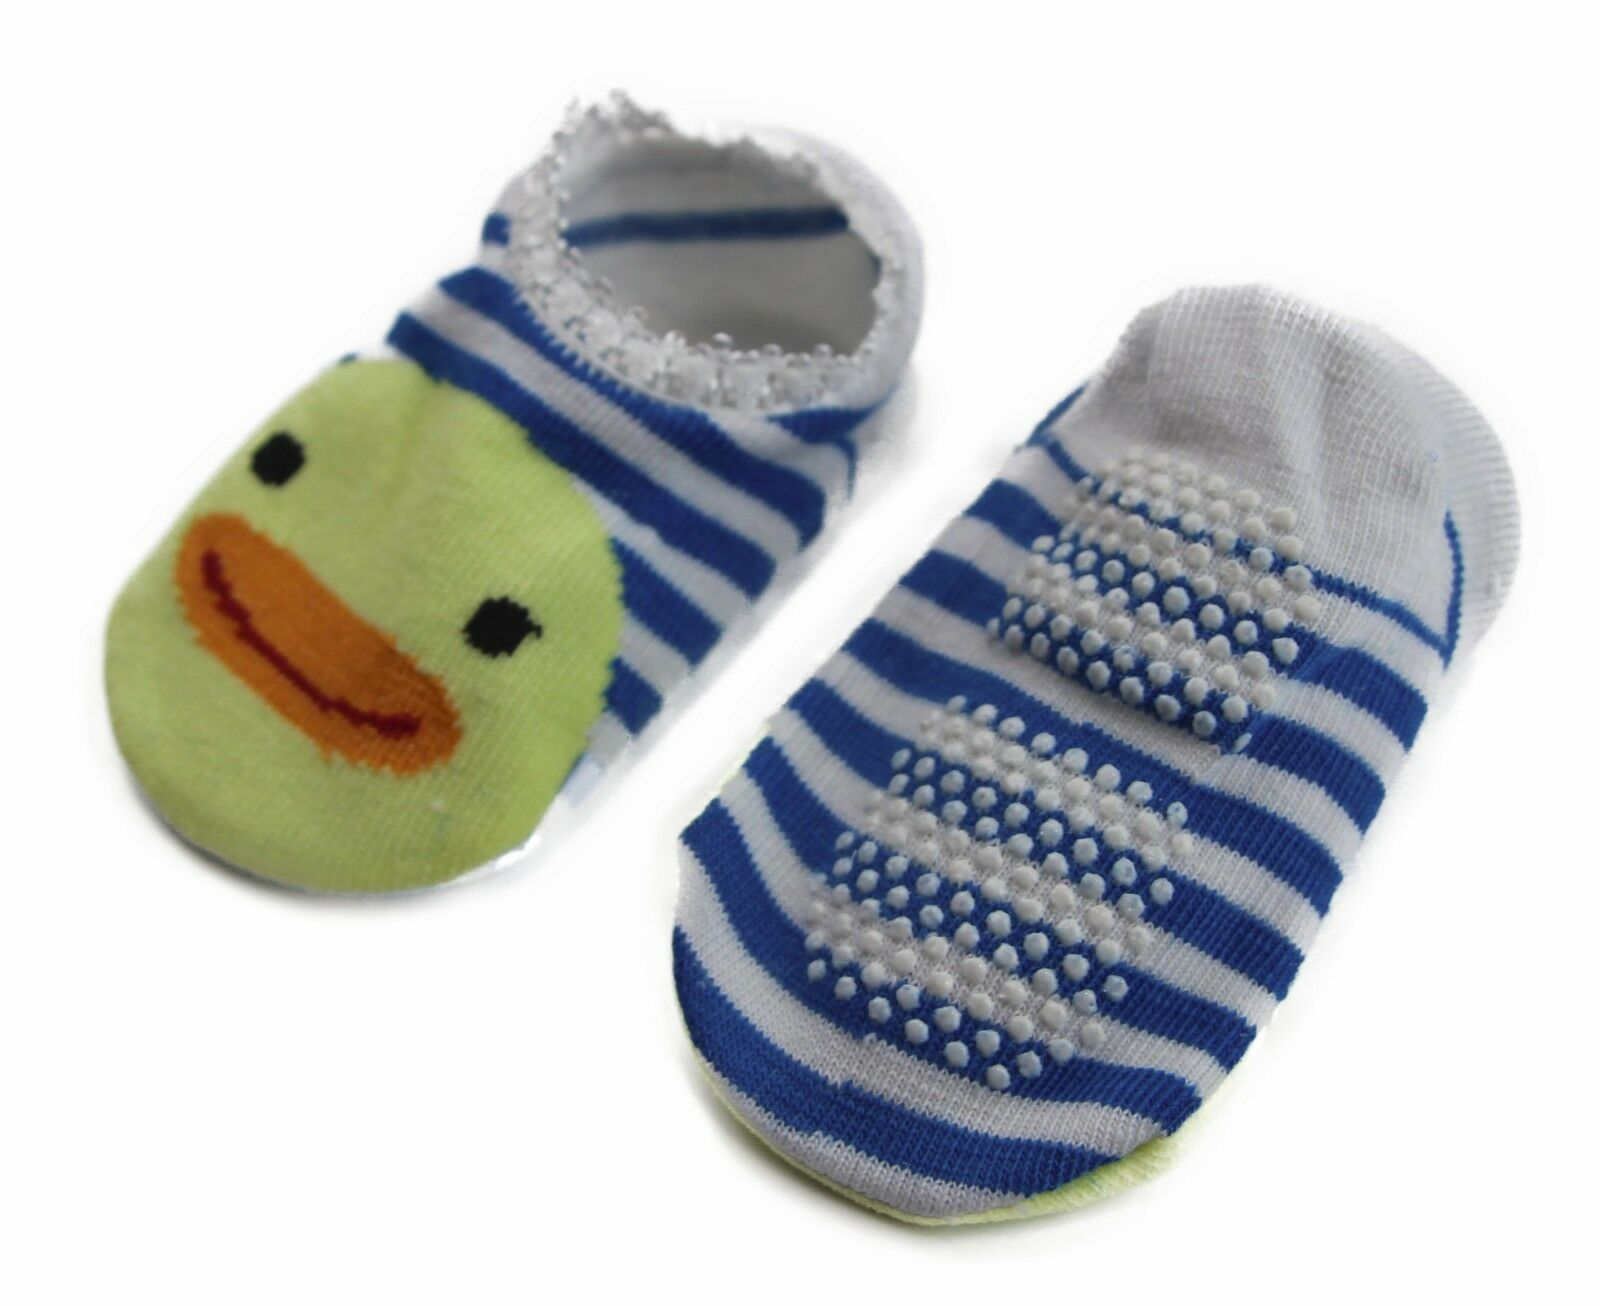 thumbnail 15 - Baby Footlets Kids Toddler Cotton Socks Anti Slip Grip Boys Girls 6-18 Months